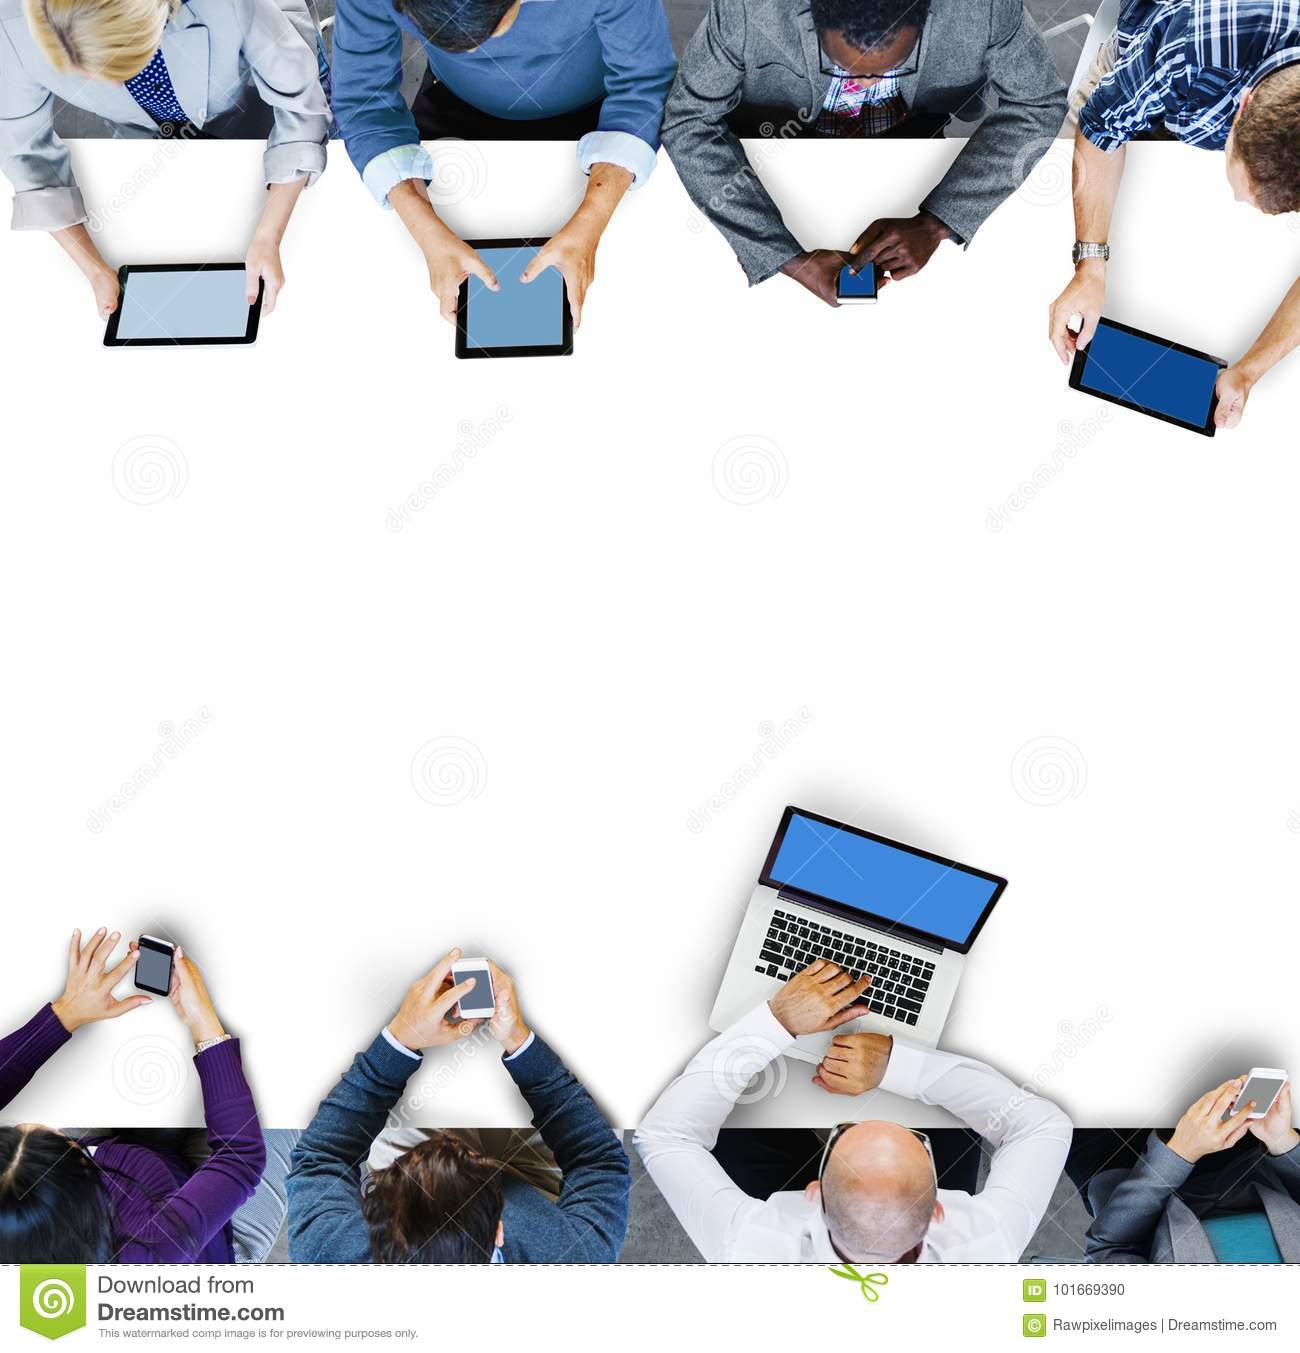 Business people using digital devices in a meeting